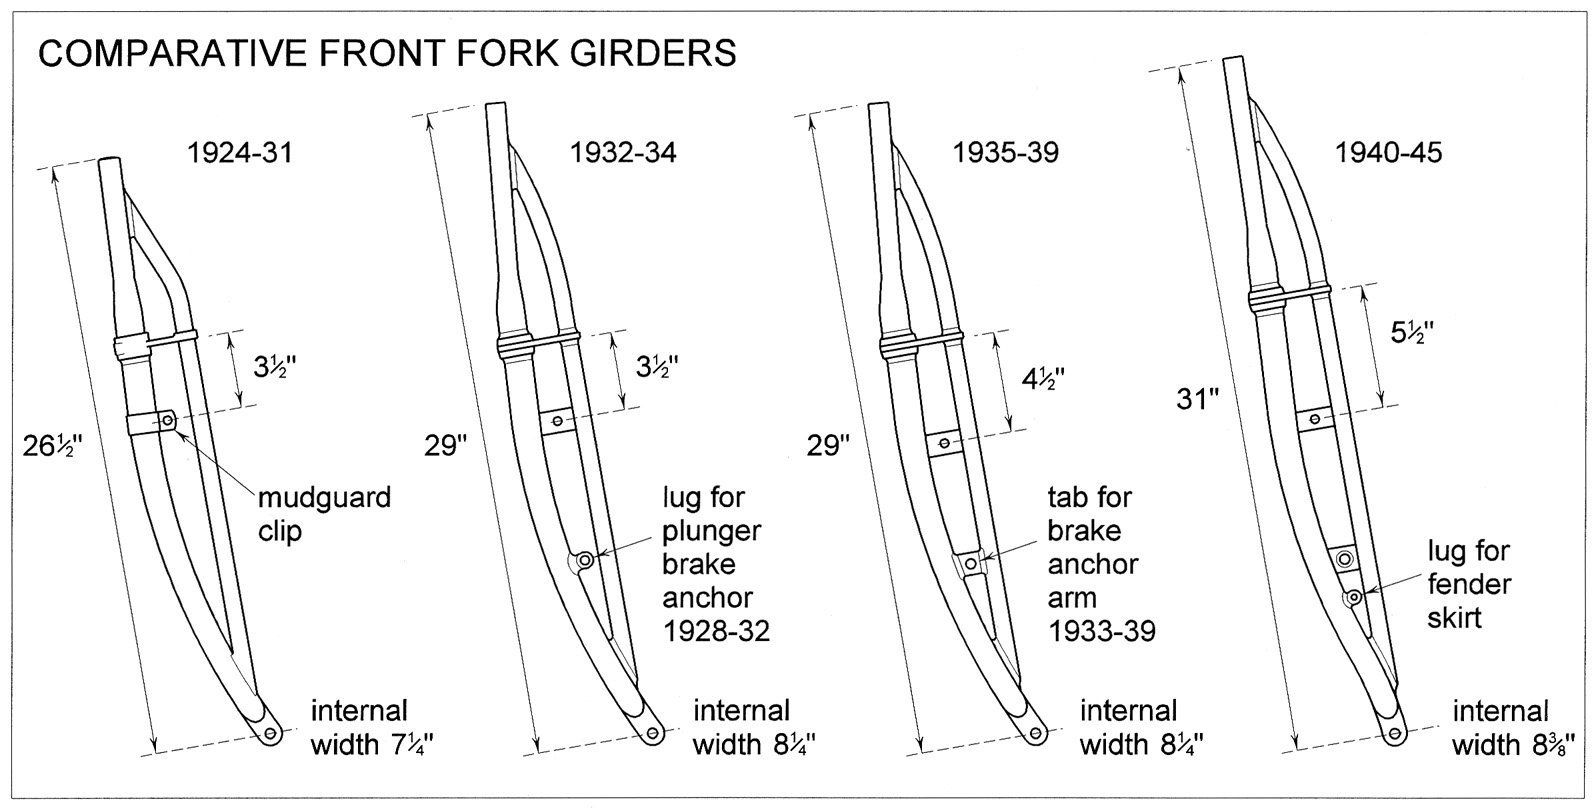 Indian Chief Comparative Front Fork Girder